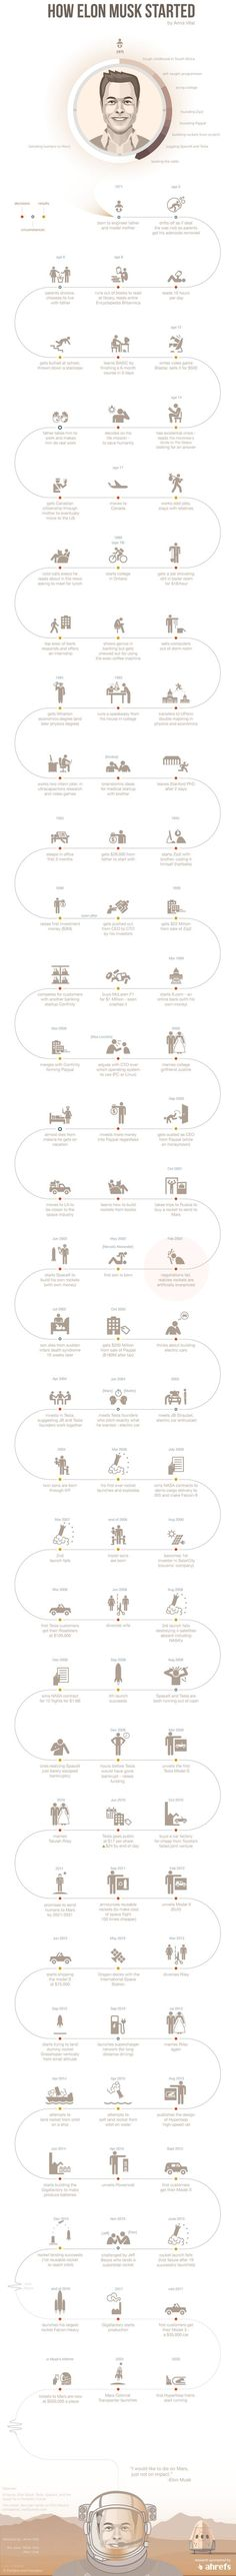 This Infographic of Elon Musk's Life is Your Roadmap to Brilliance I love this man so much, reading his life story now 💜💜 Elon Musk Biography, Science, Successful People, Personal Development, Leadership, Knowledge, Learning, Tips, Electric Cars